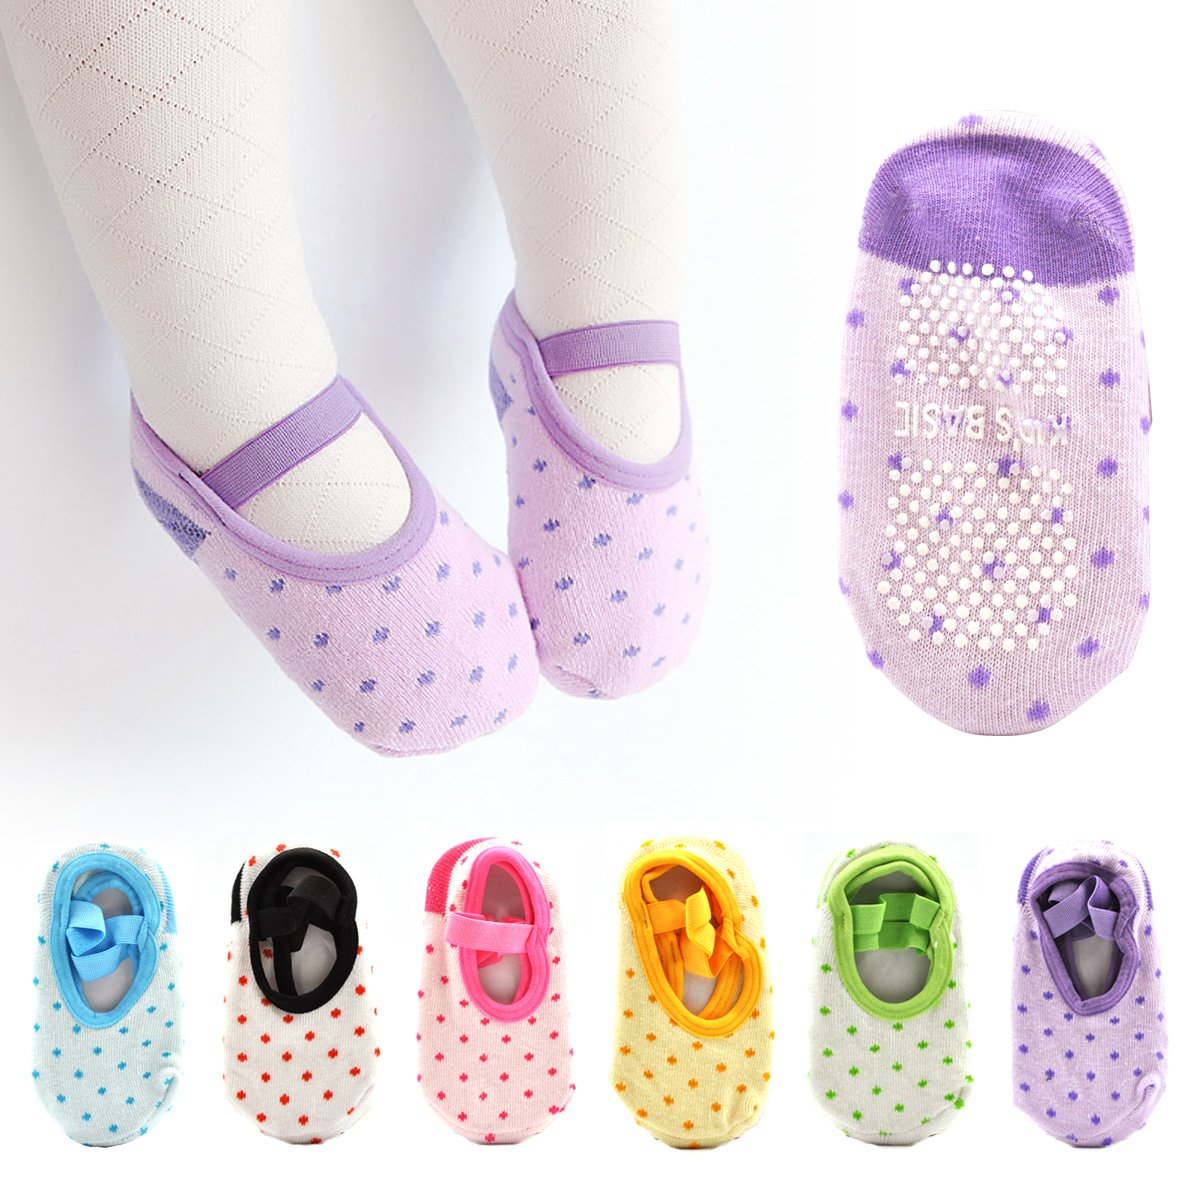 Cunina 6 Pairs Cute Lovely Toddler Baby Socks Anti Slip Skid Cartoon Socks for 5-36 Months Baby and Infants